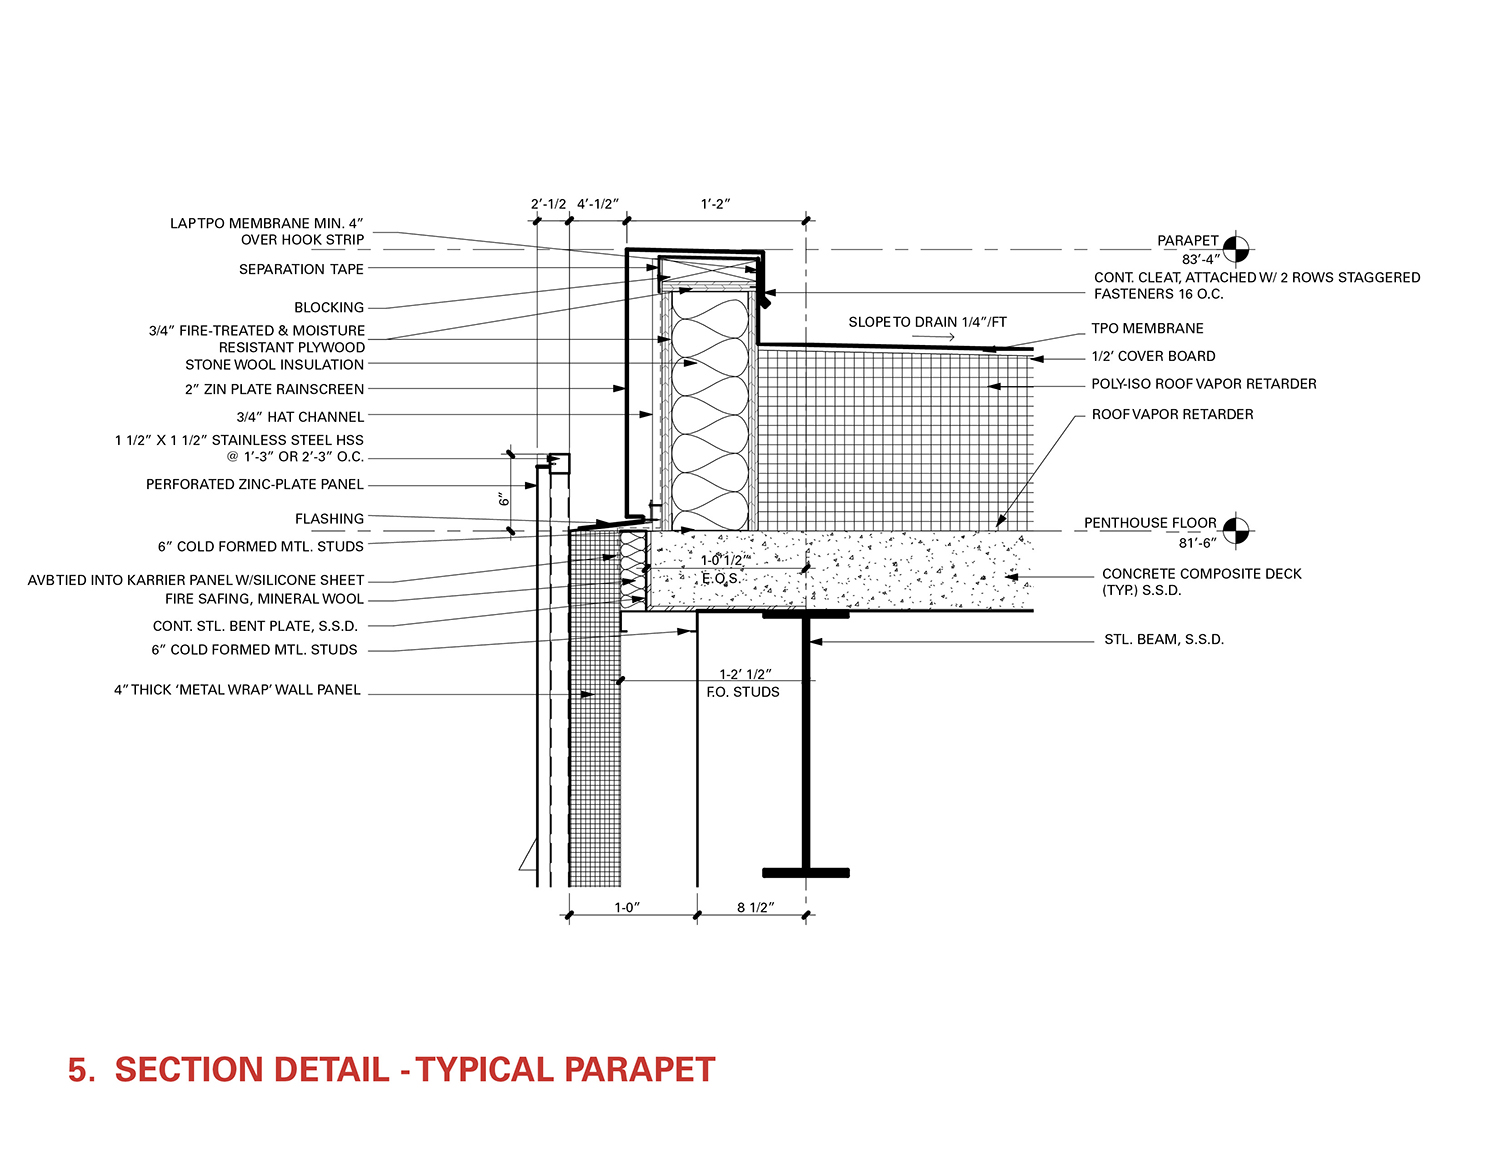 Section Detail - Typical Parapet Leers Weinzapfel Associates}